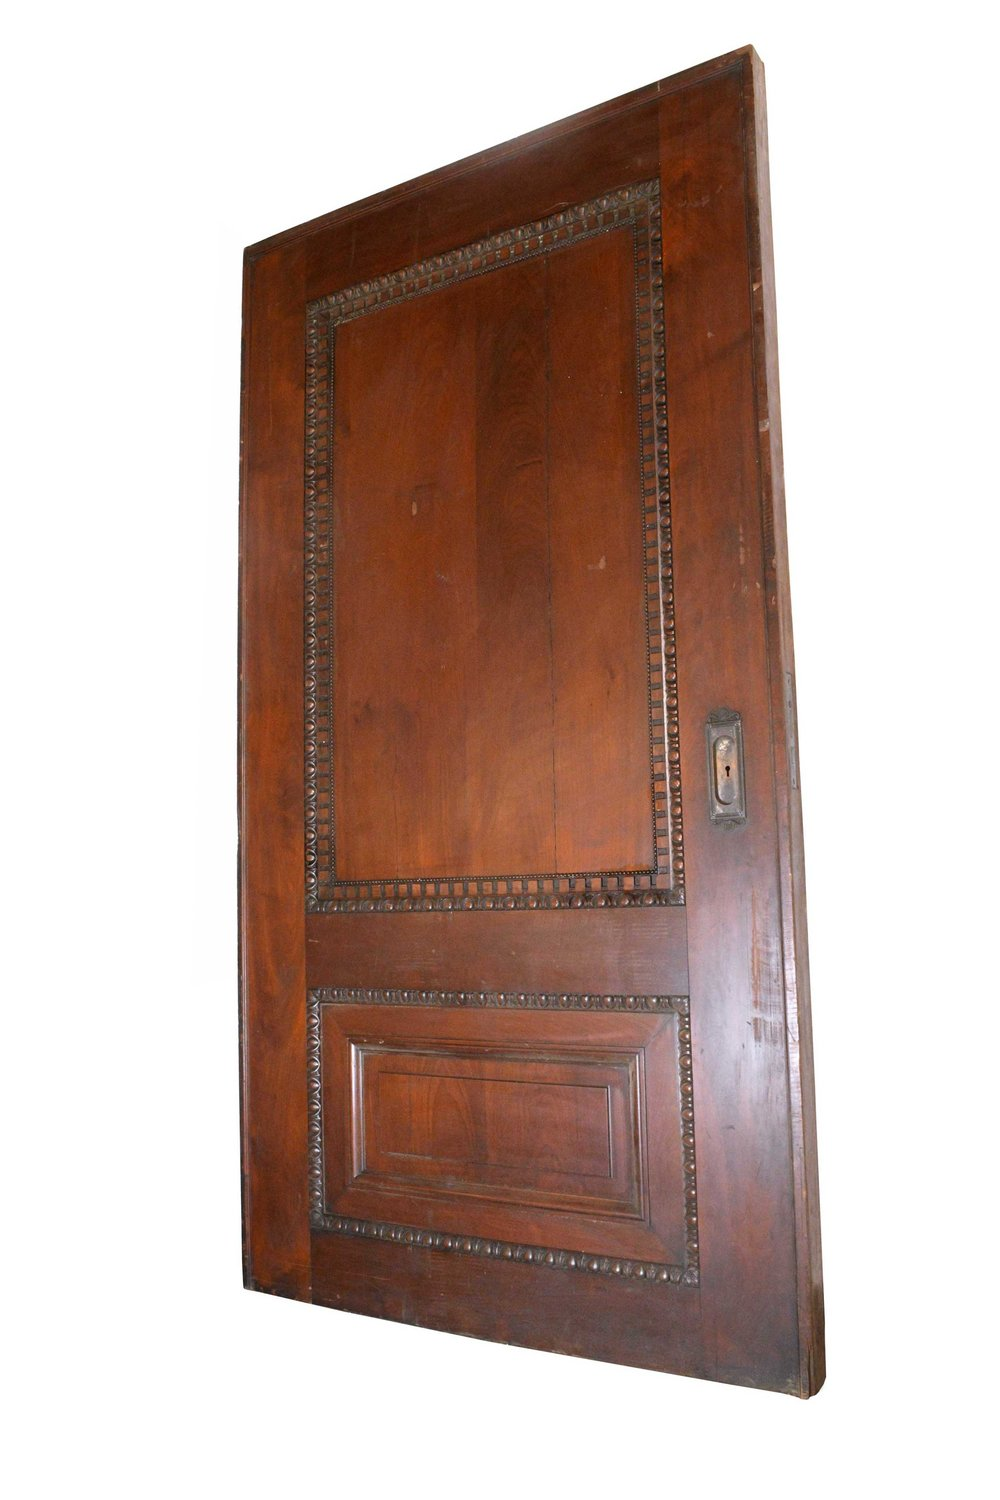 47925-massive-carved-oak-pocket-door-side-edit.jpg